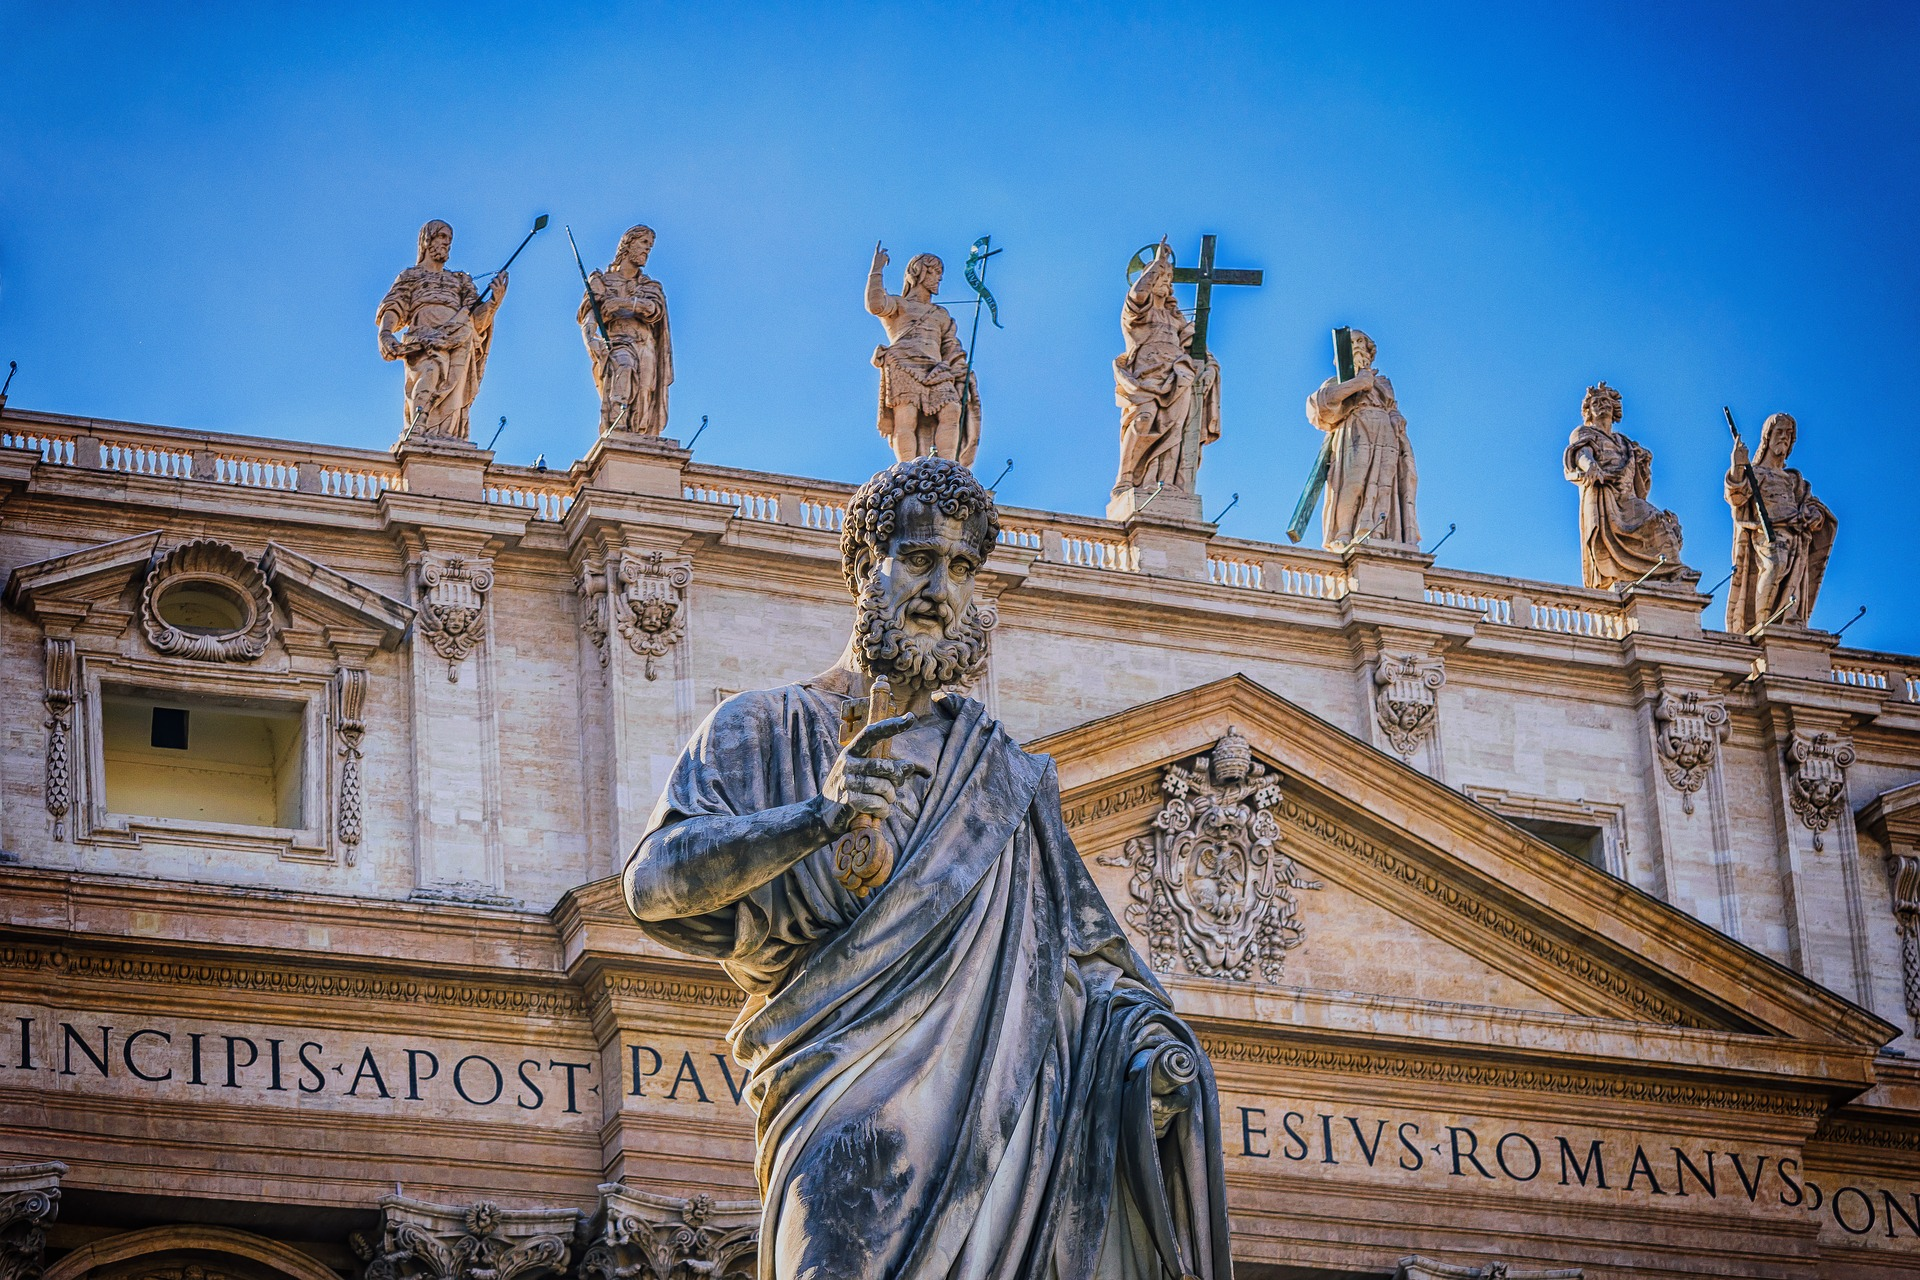 apostle st peter's basilica rome italy